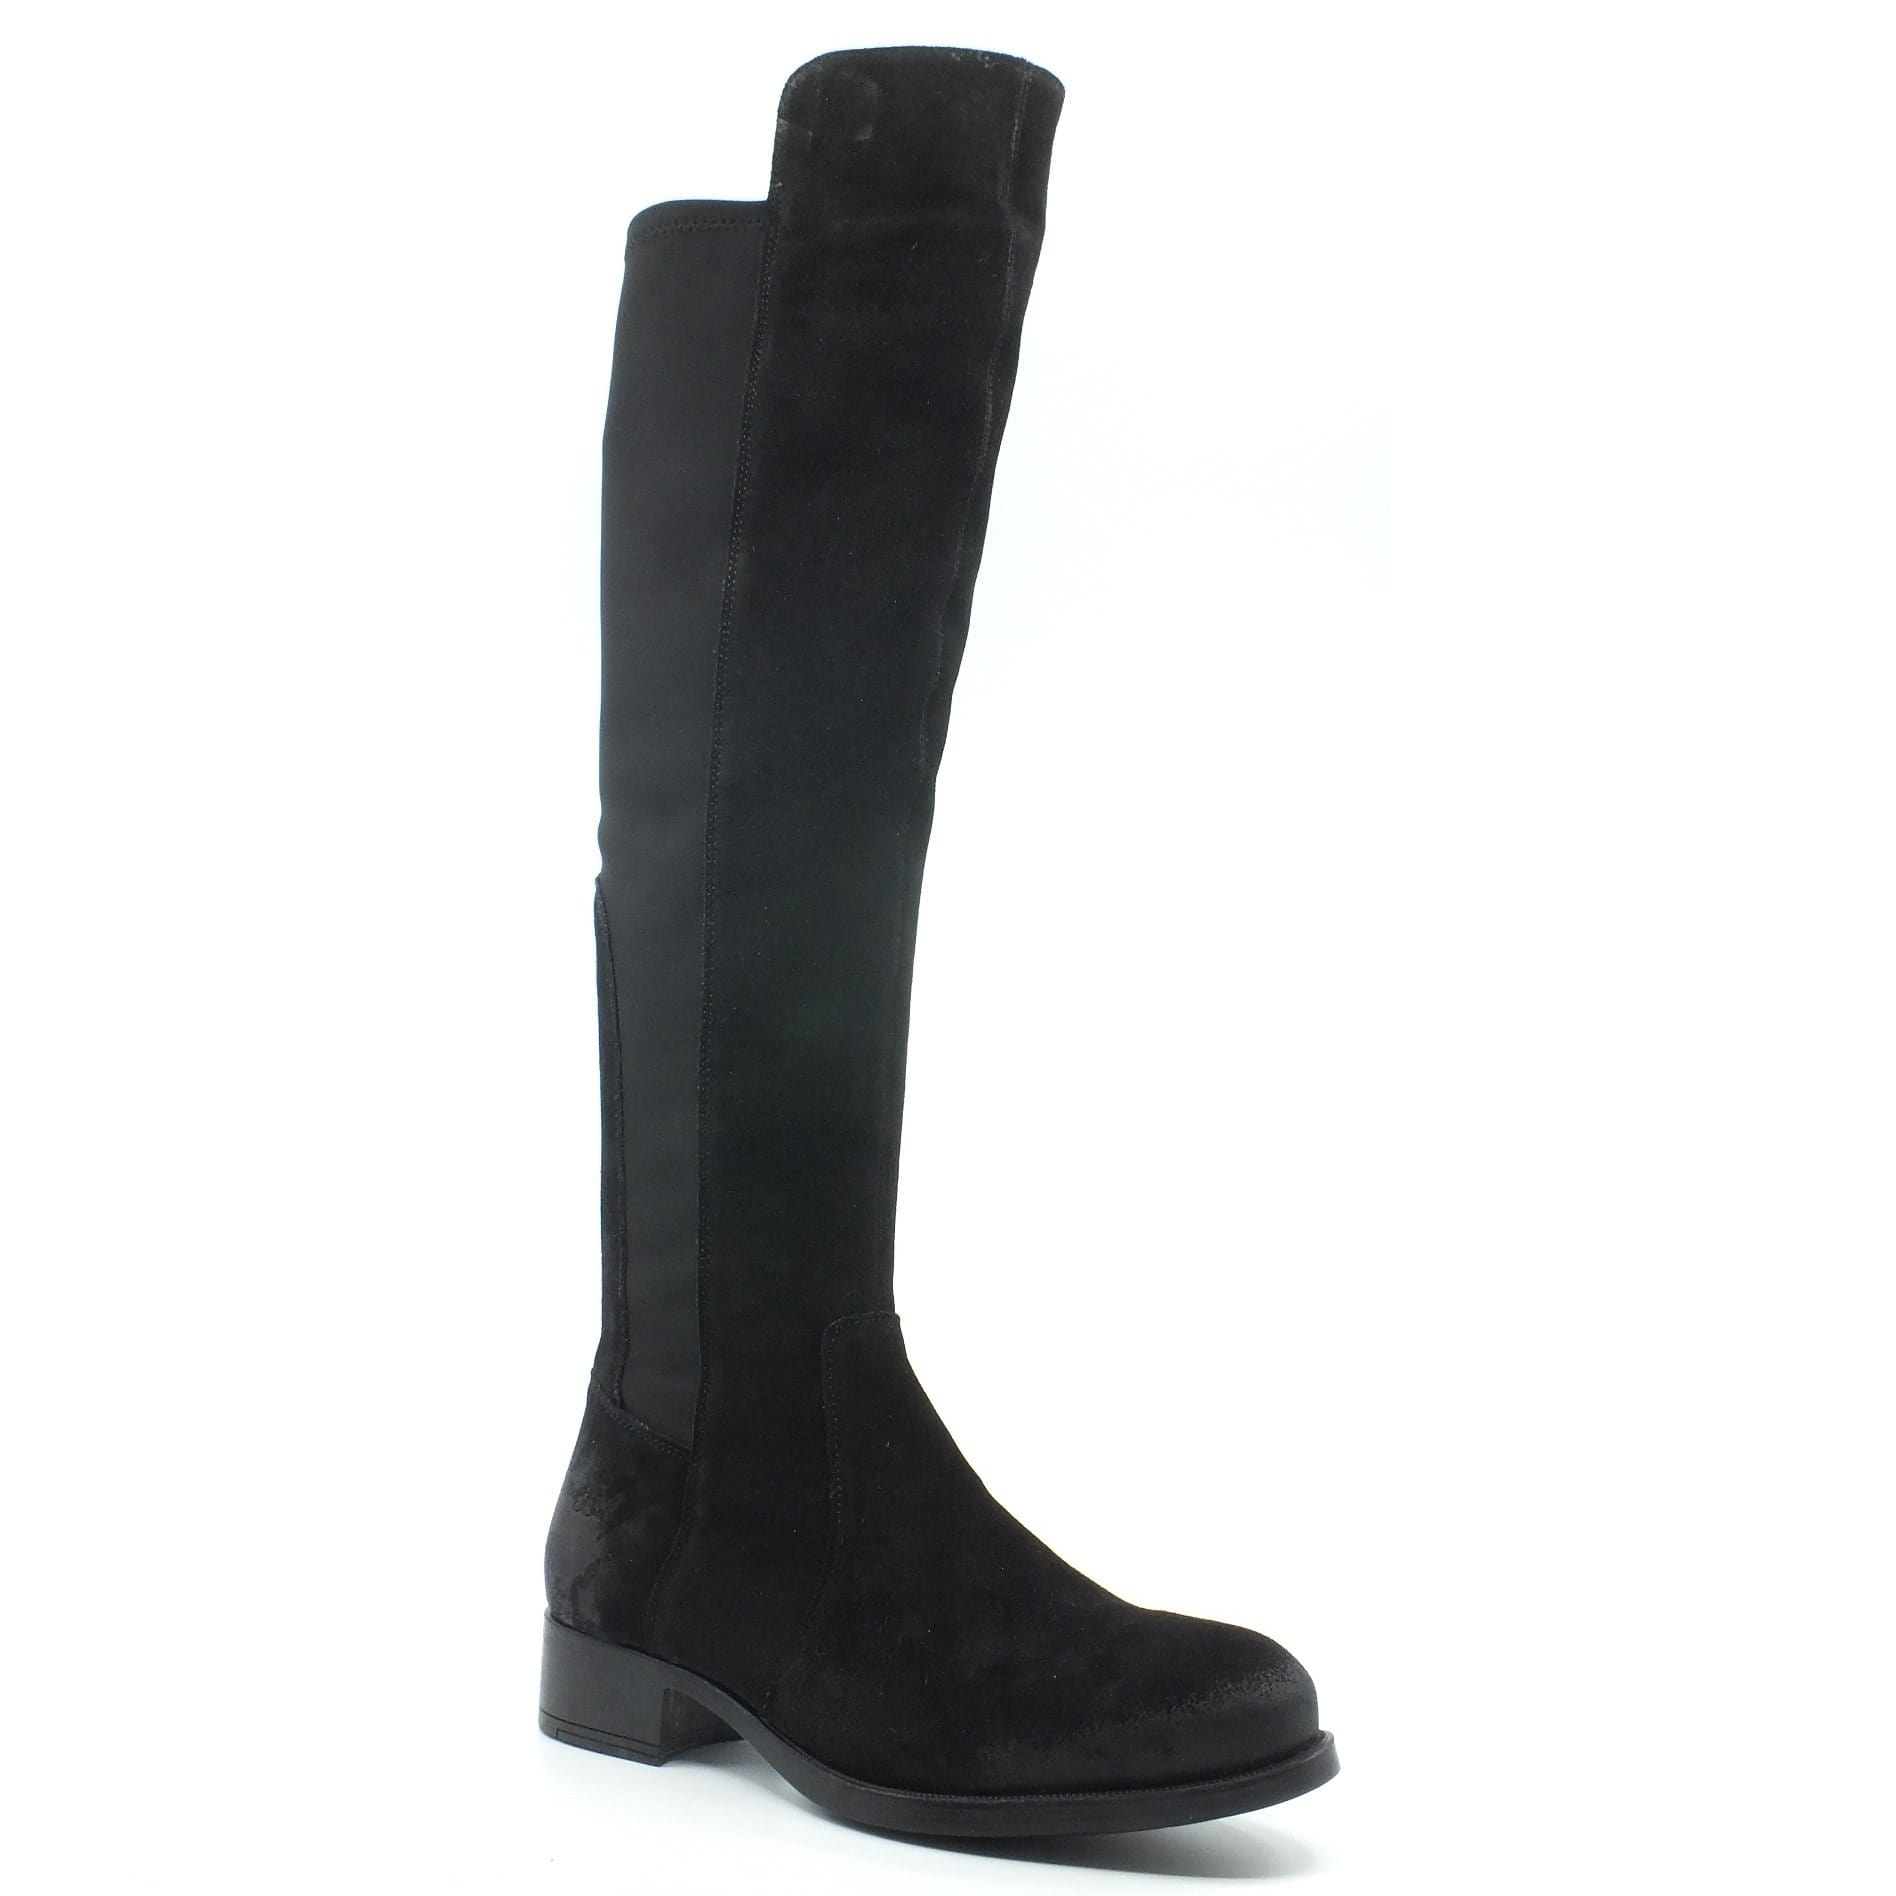 Bos   Co Bunt Women s Over the Knee Waterproof Leather Tall Boot Shoe 0754600457